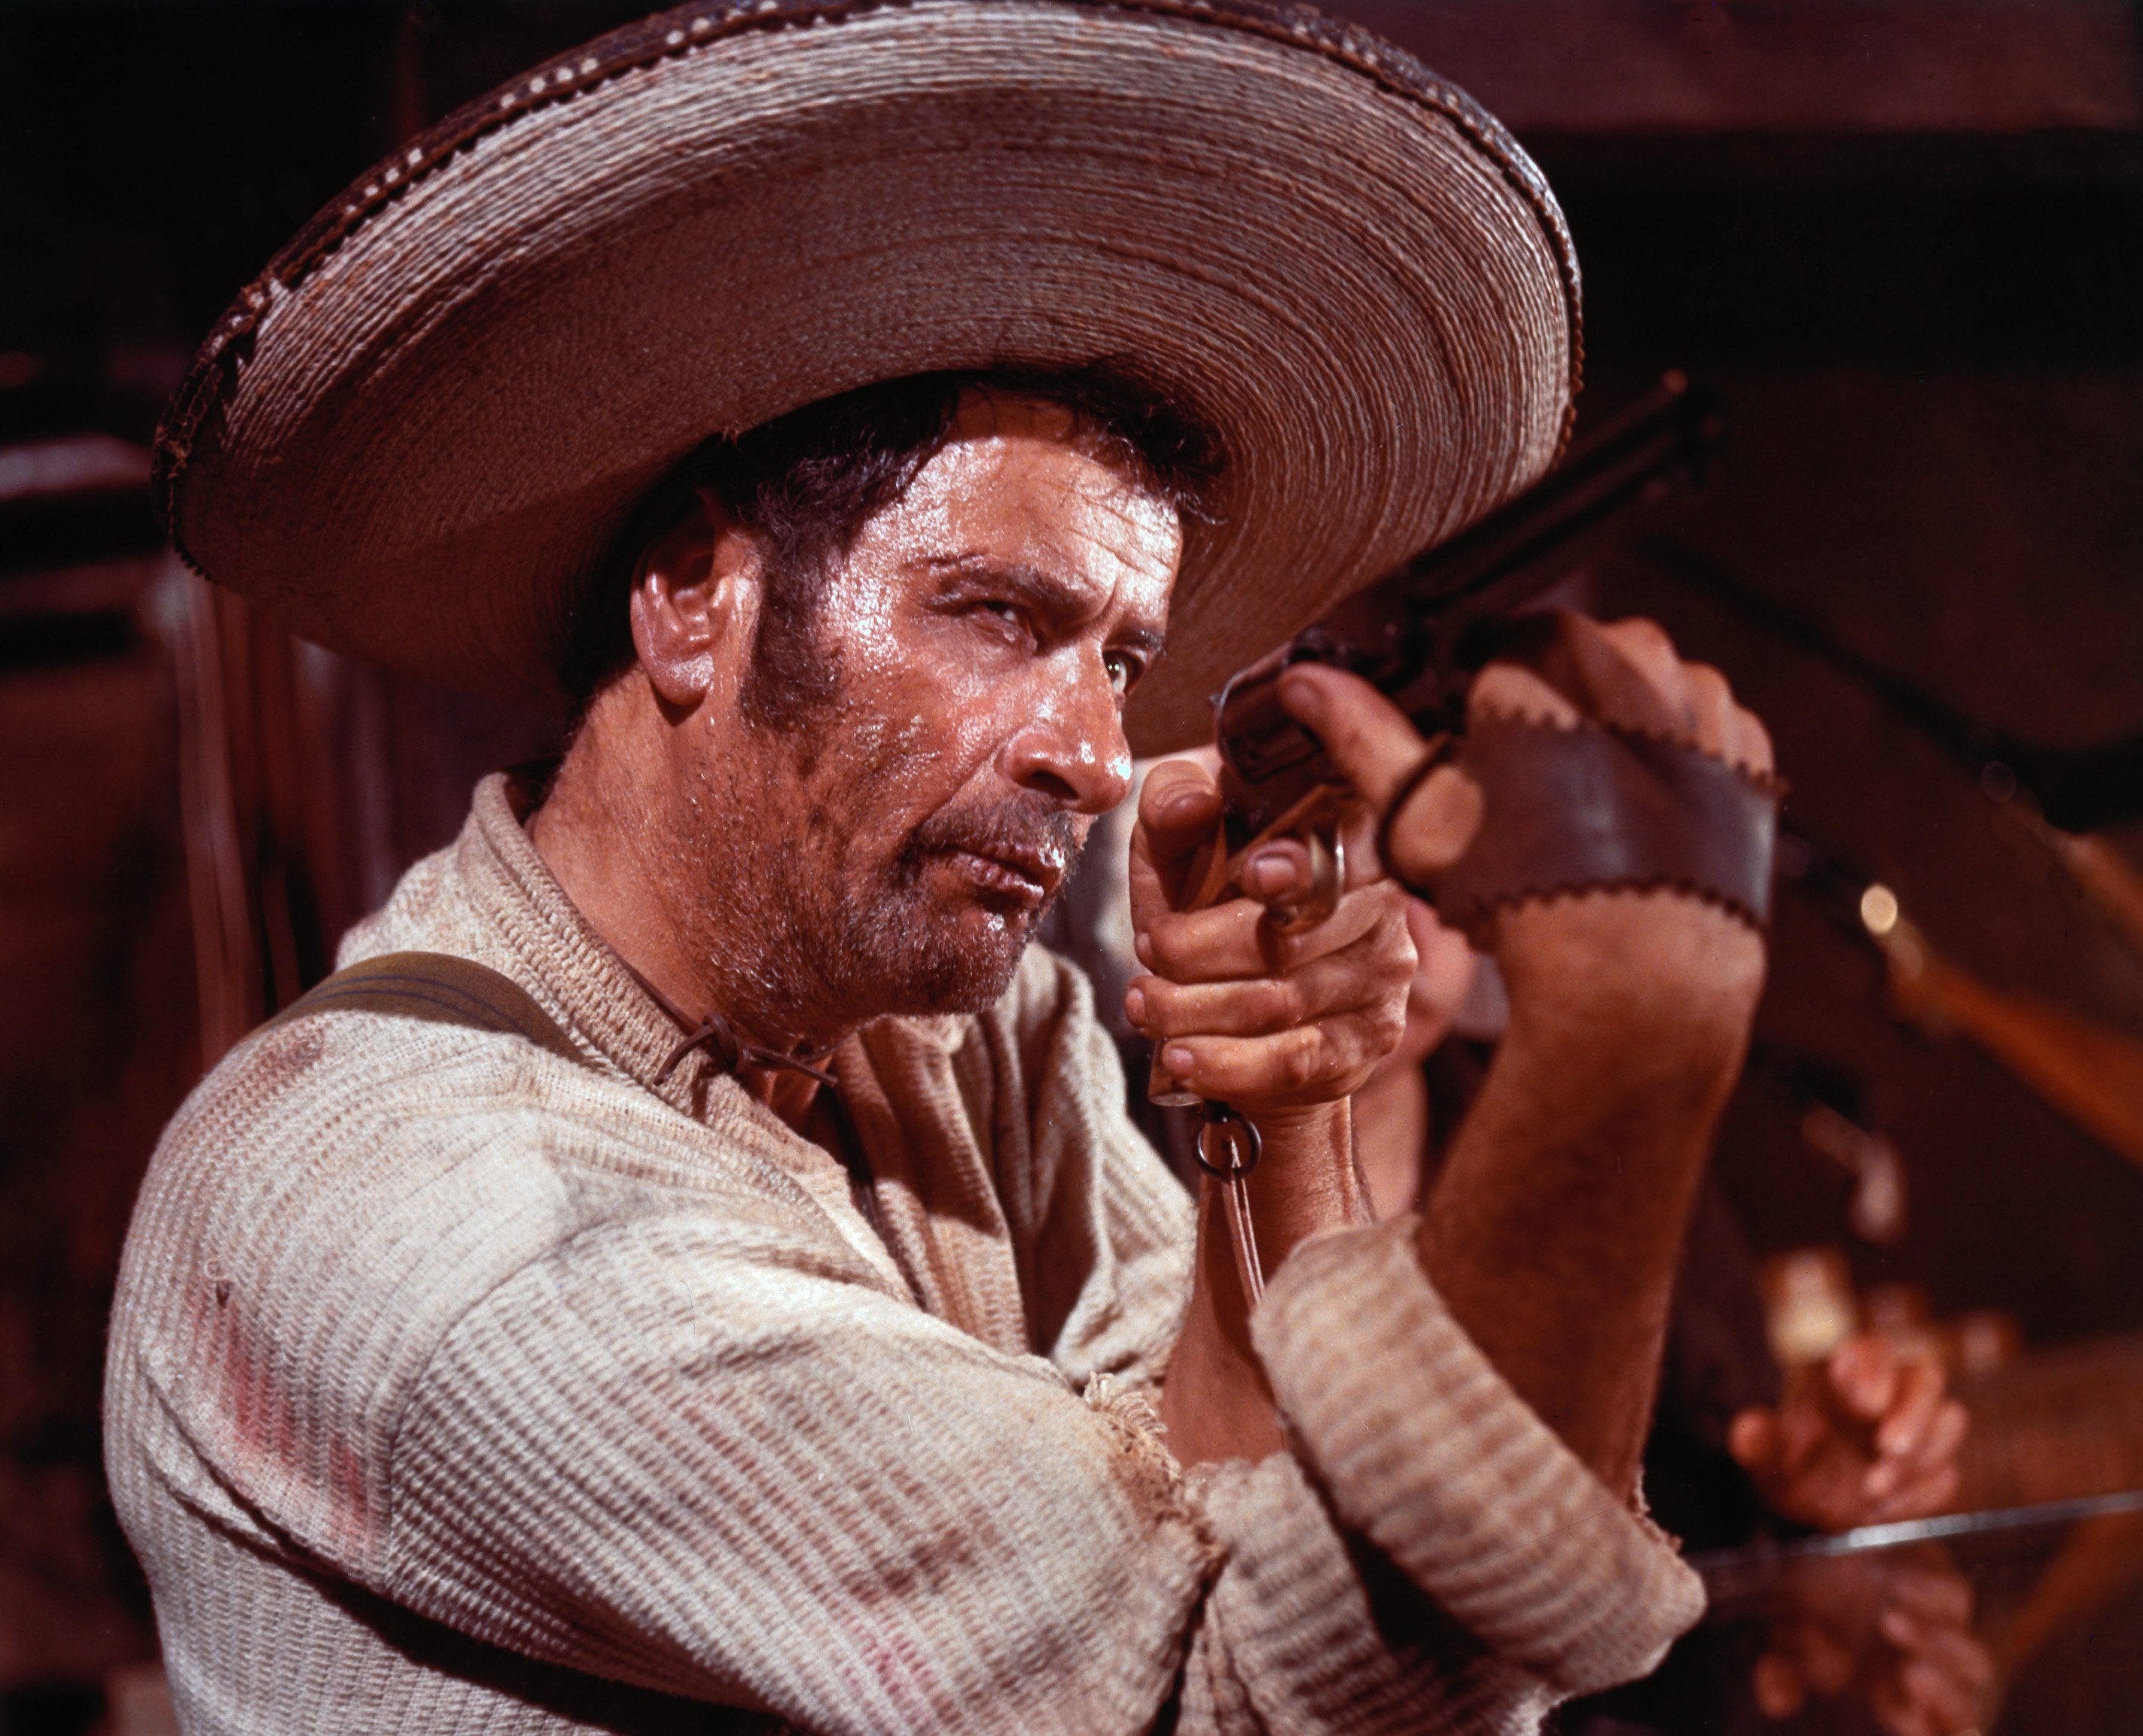 the good bad and ugly of Overview of the good, the bad, and the ugly, 1966, directed by sergio leone, with clint eastwood, eli wallach, lee van cleef, at turner classic movies.